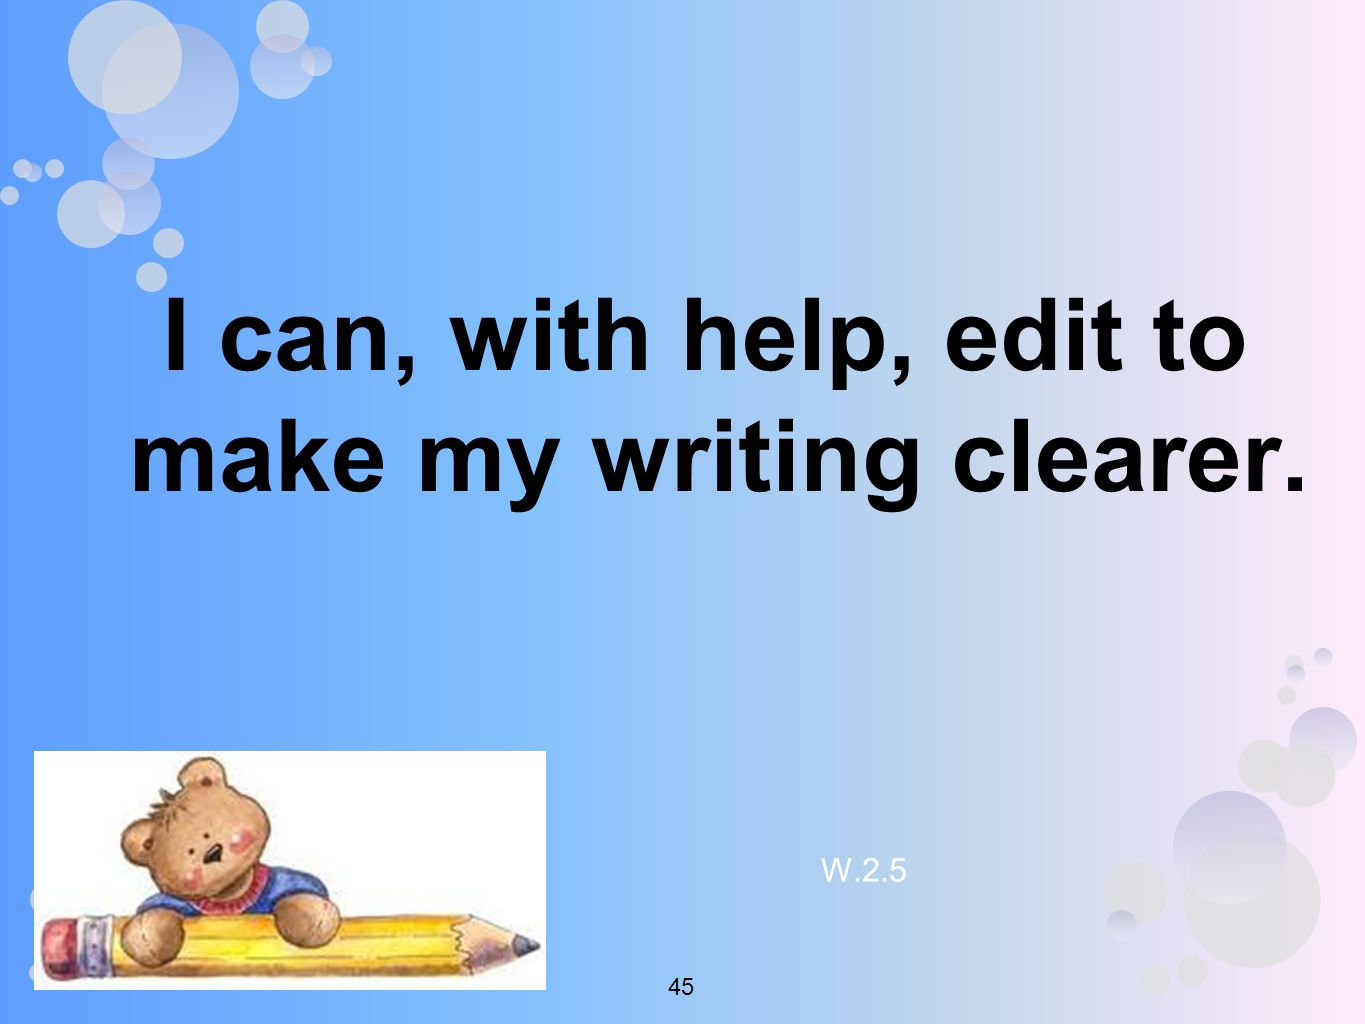 I can, with help, edit to make my writing clearer. W